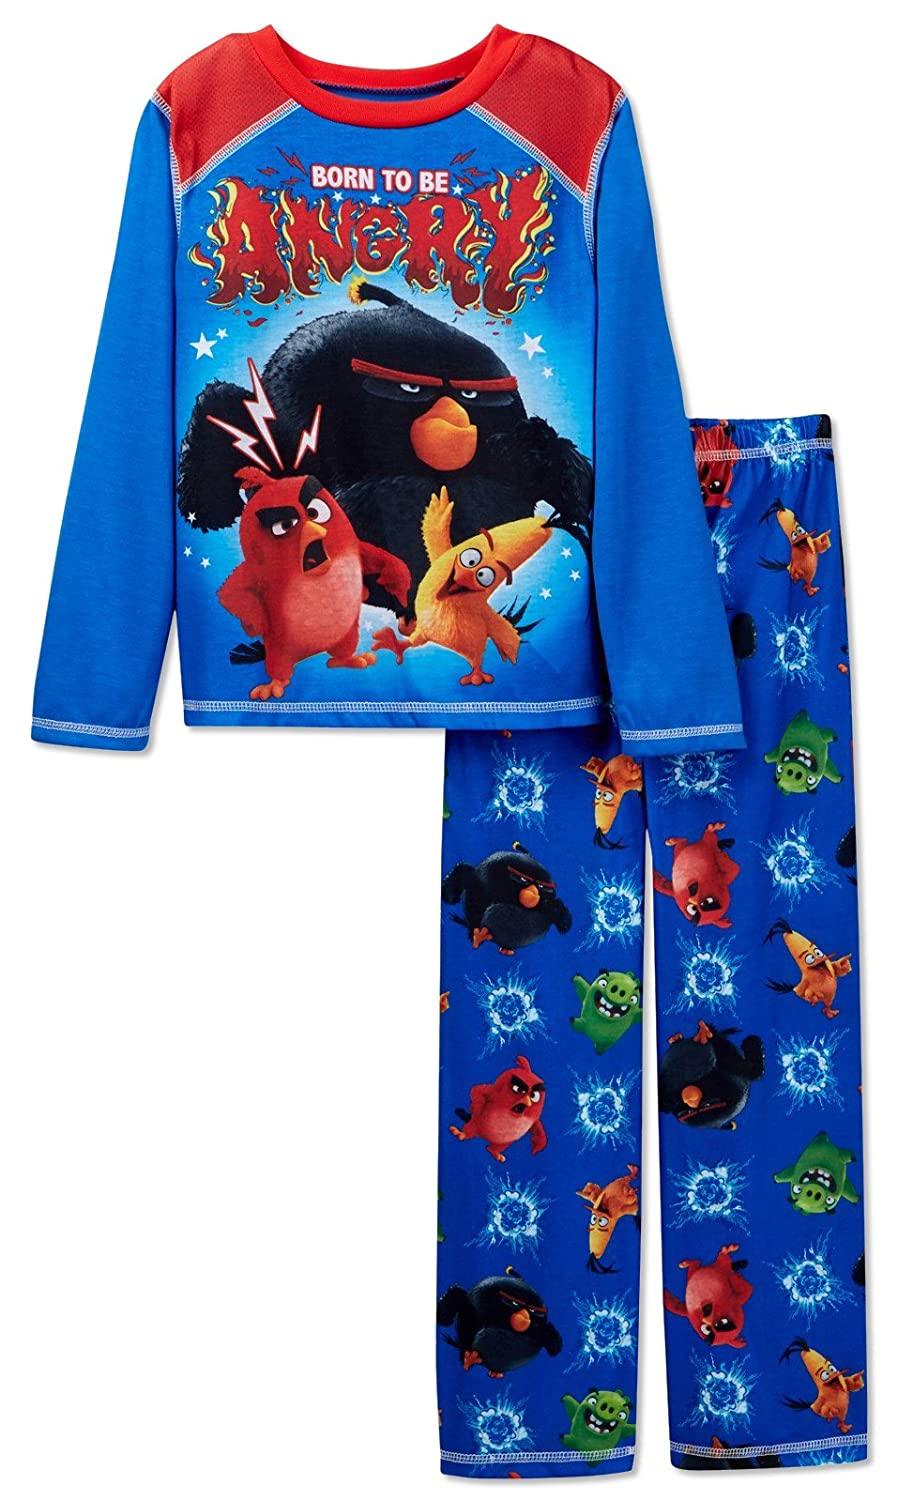 Angry Birds Big Boys' Born to Be Angry 2-Piece Pajamas 8